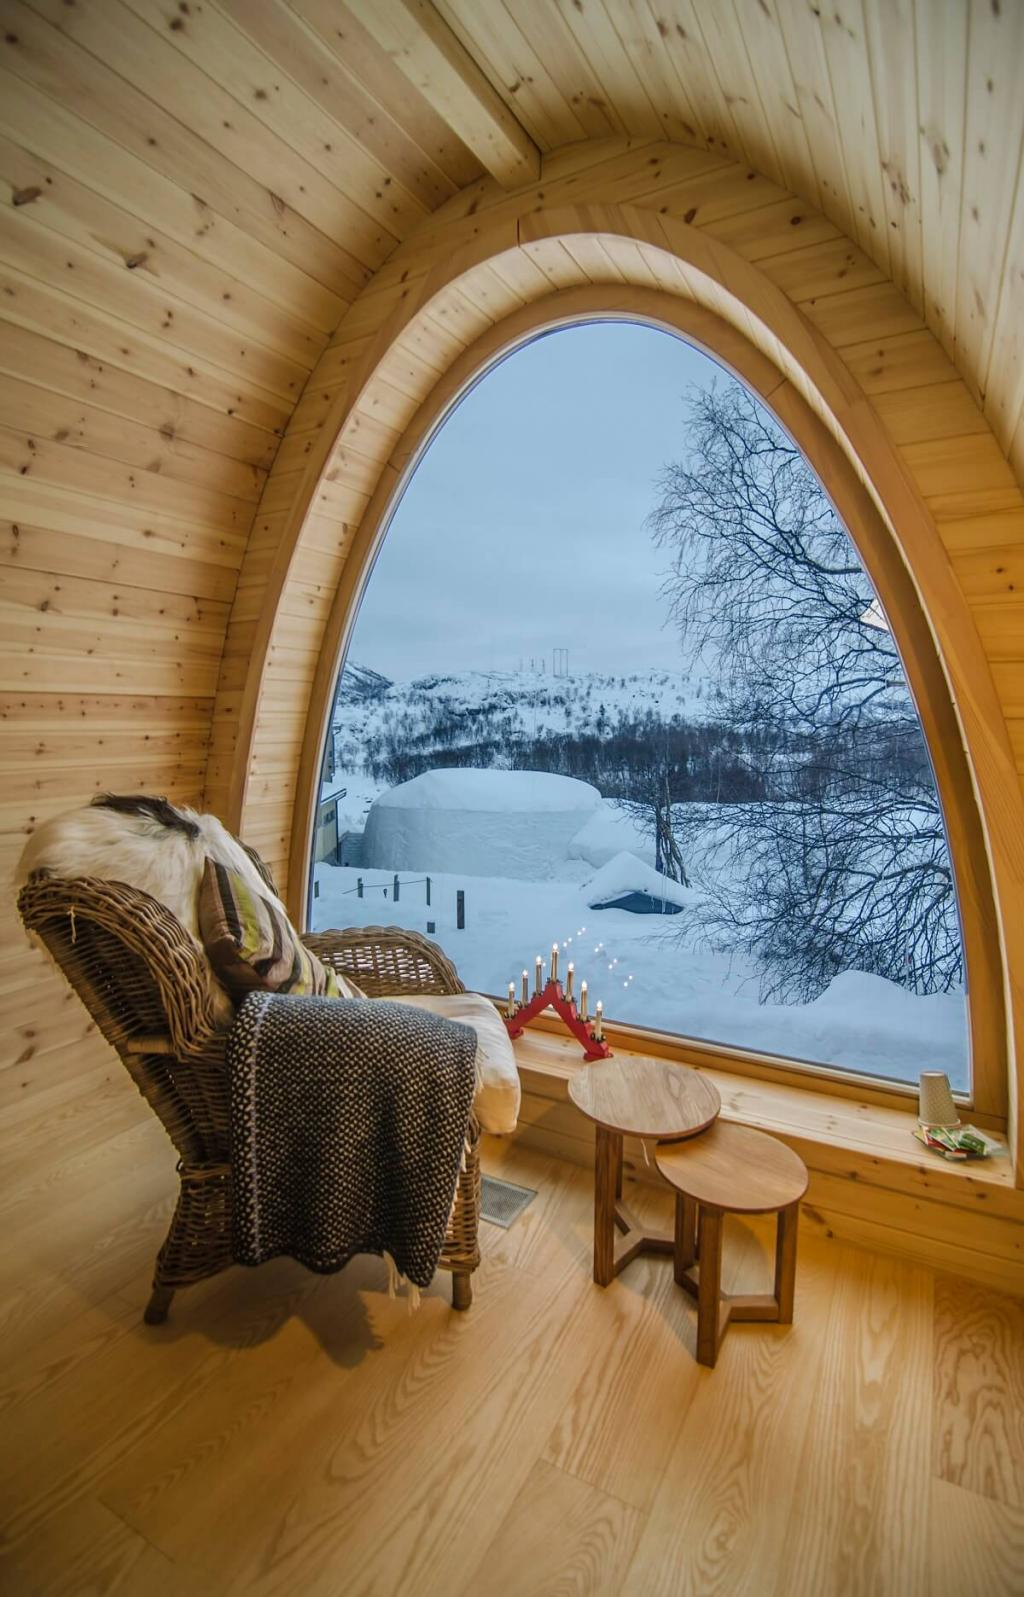 Simple Rattan Reading Chair in Wooden Winter House windows